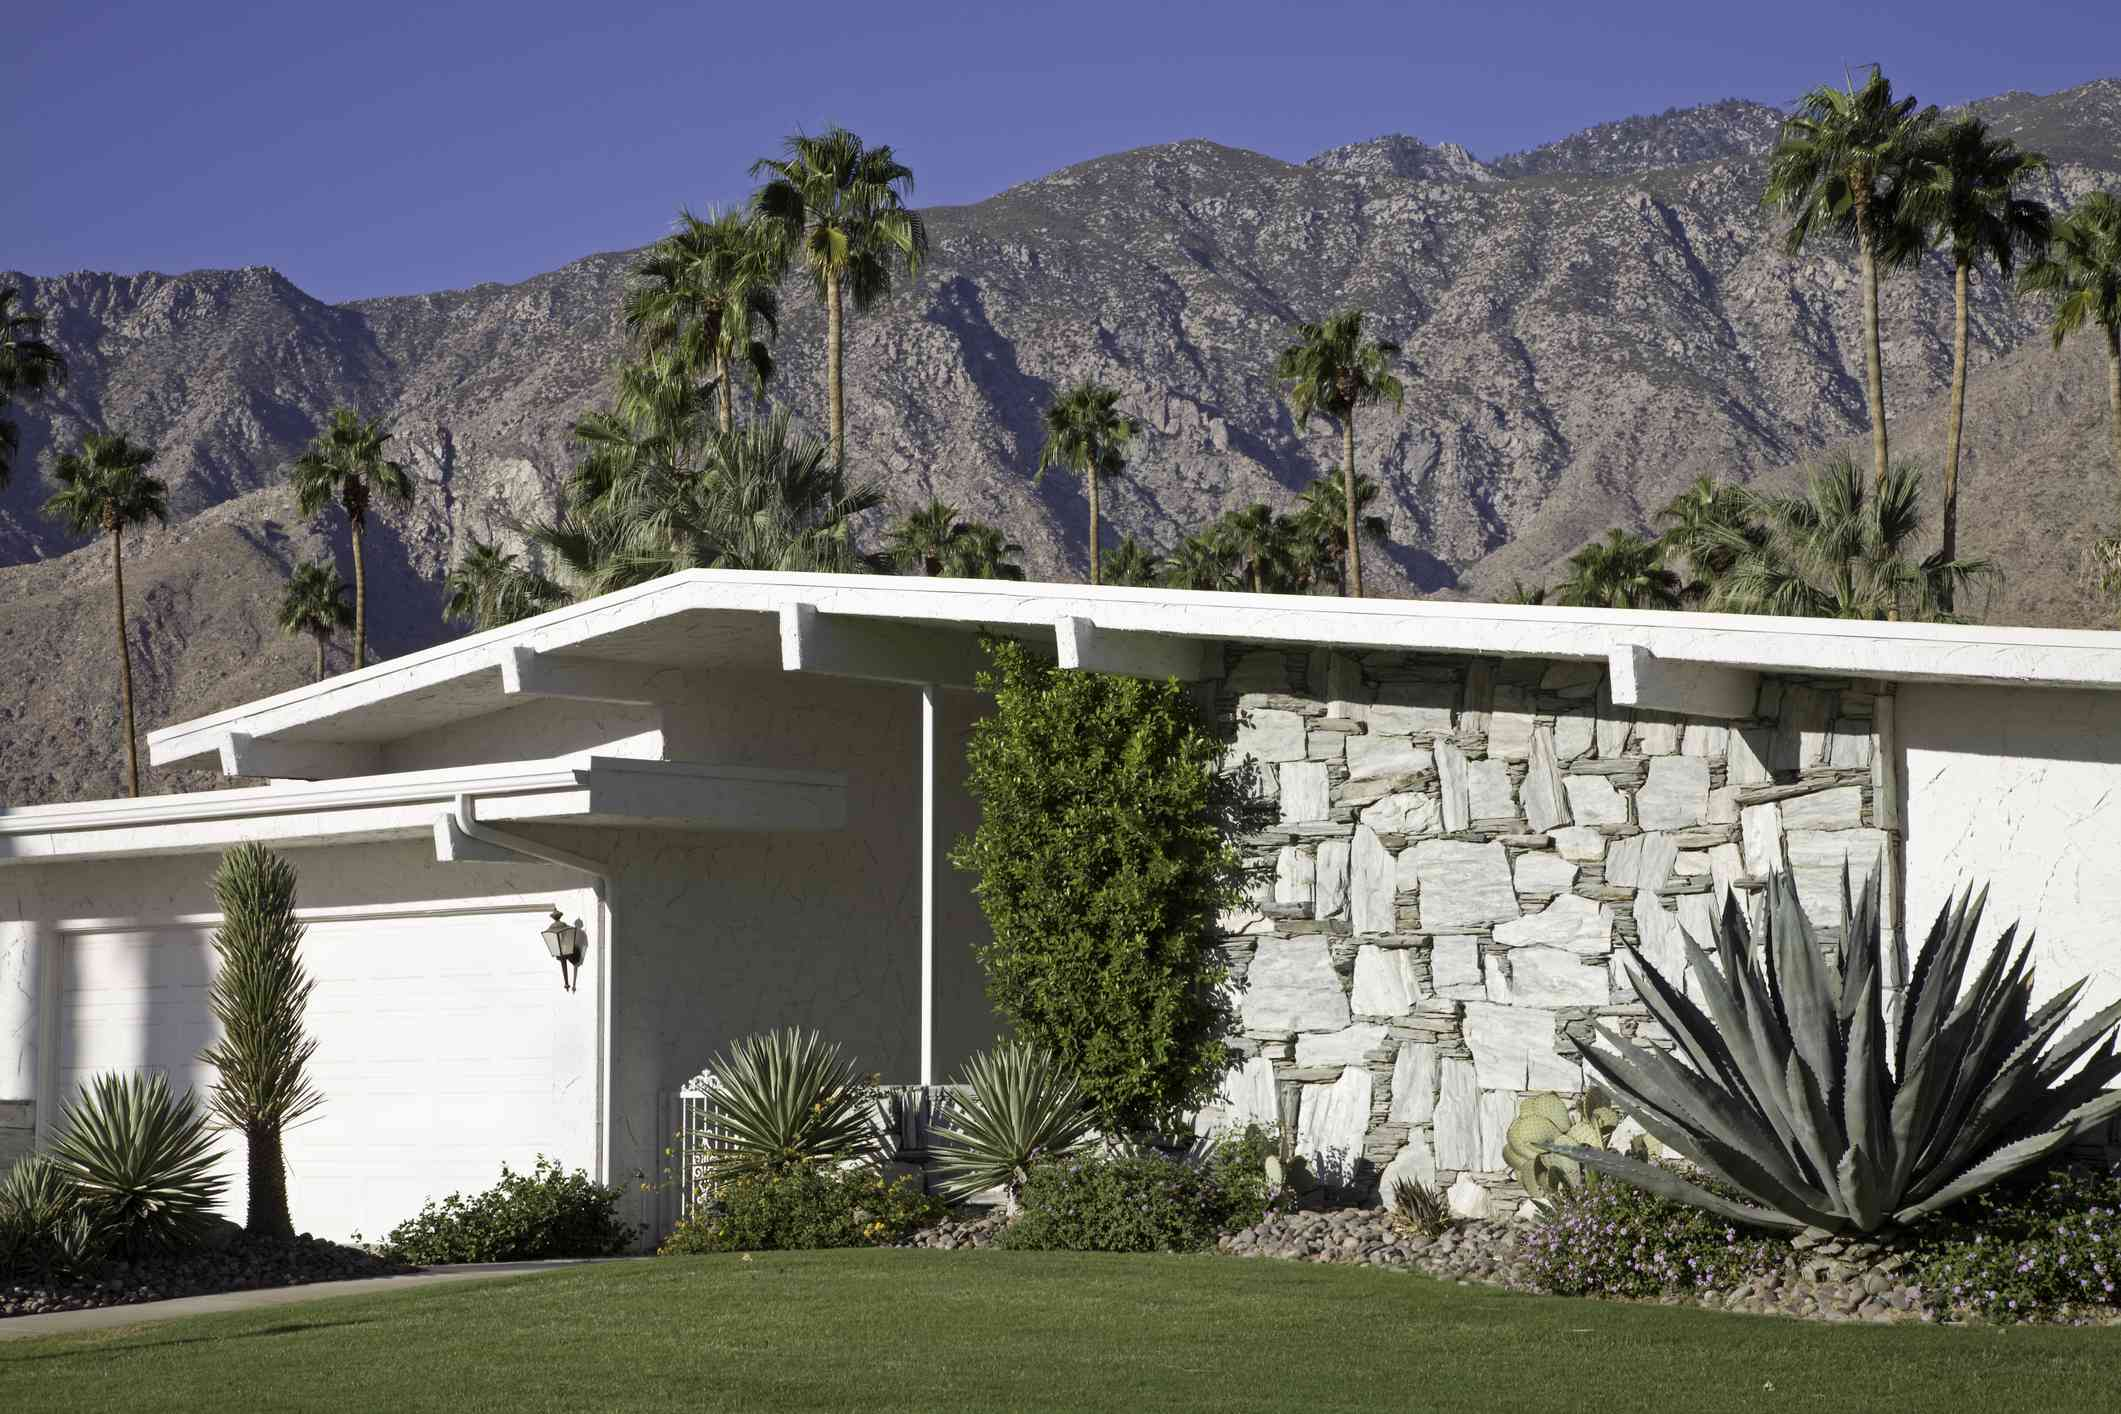 Mid-century modern house in Palm Springs